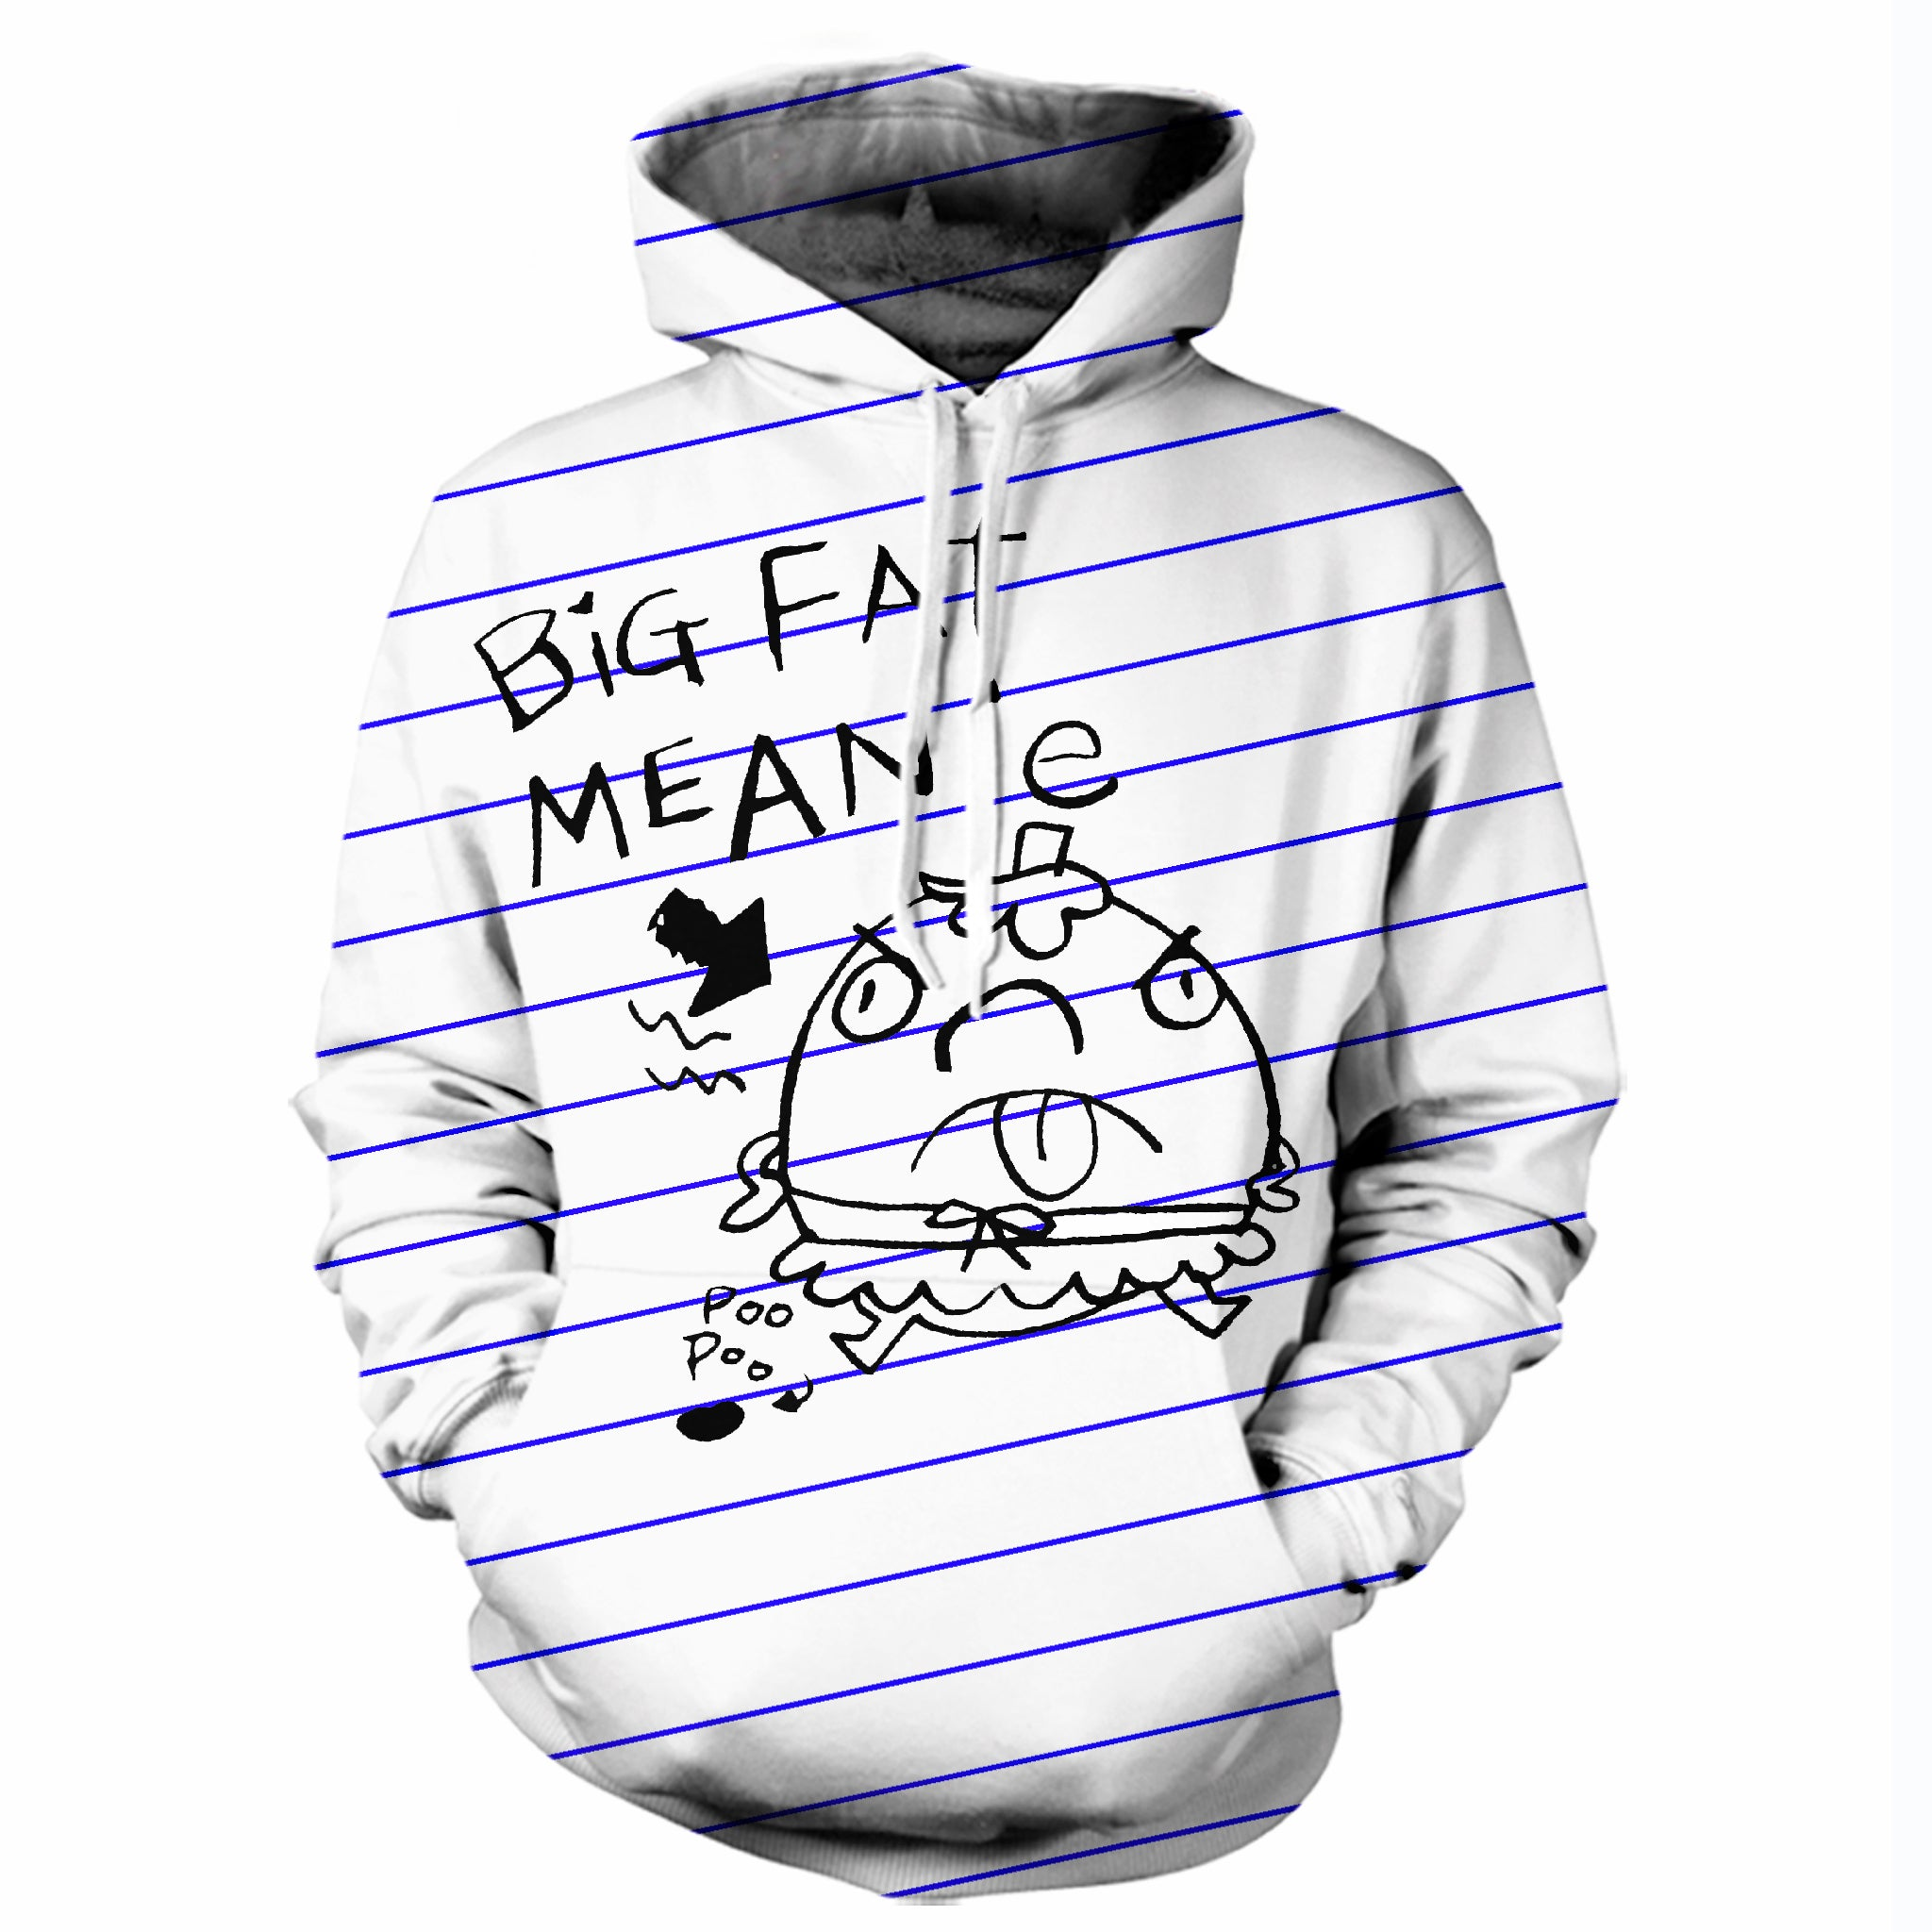 Big Fat Meanie Hoodie